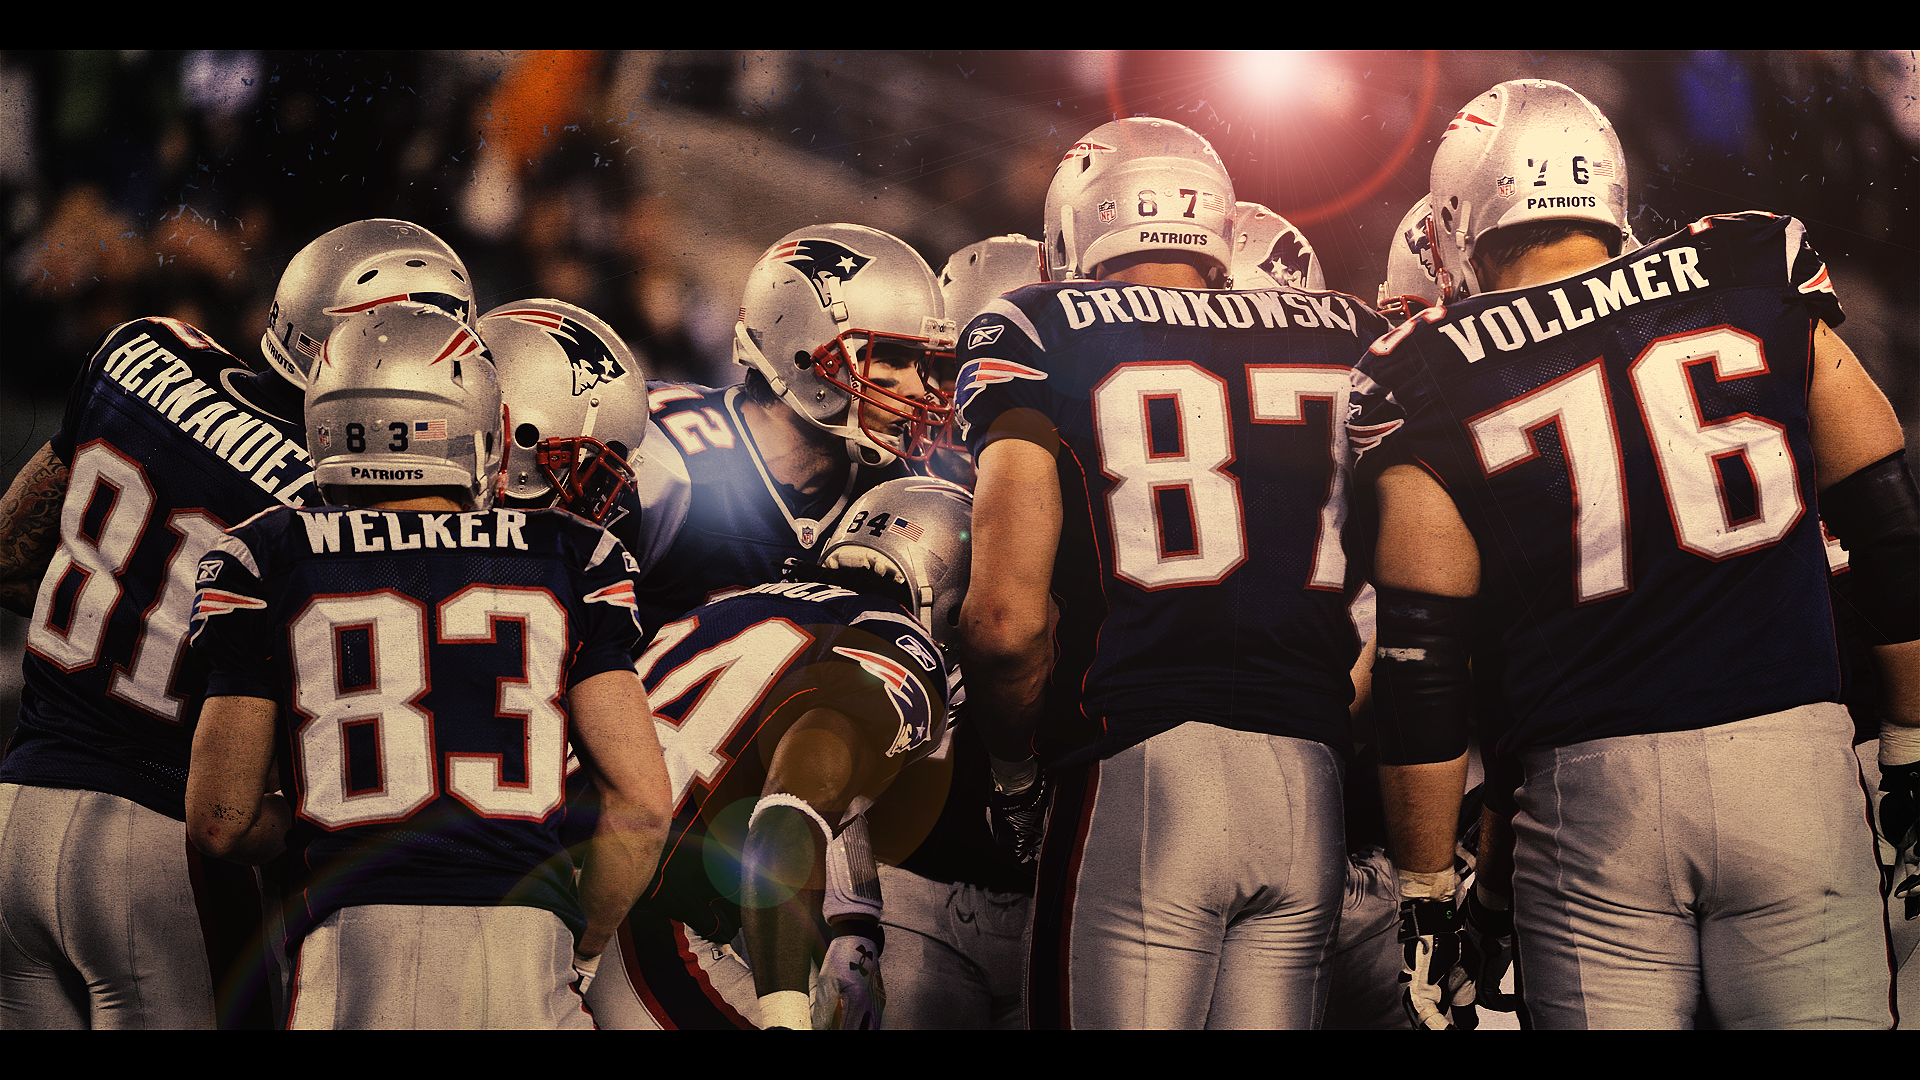 Patriots Wallpapers in Best 1920x1080 Resolutions | Cristina Deschamp B.SCB Wallpapers